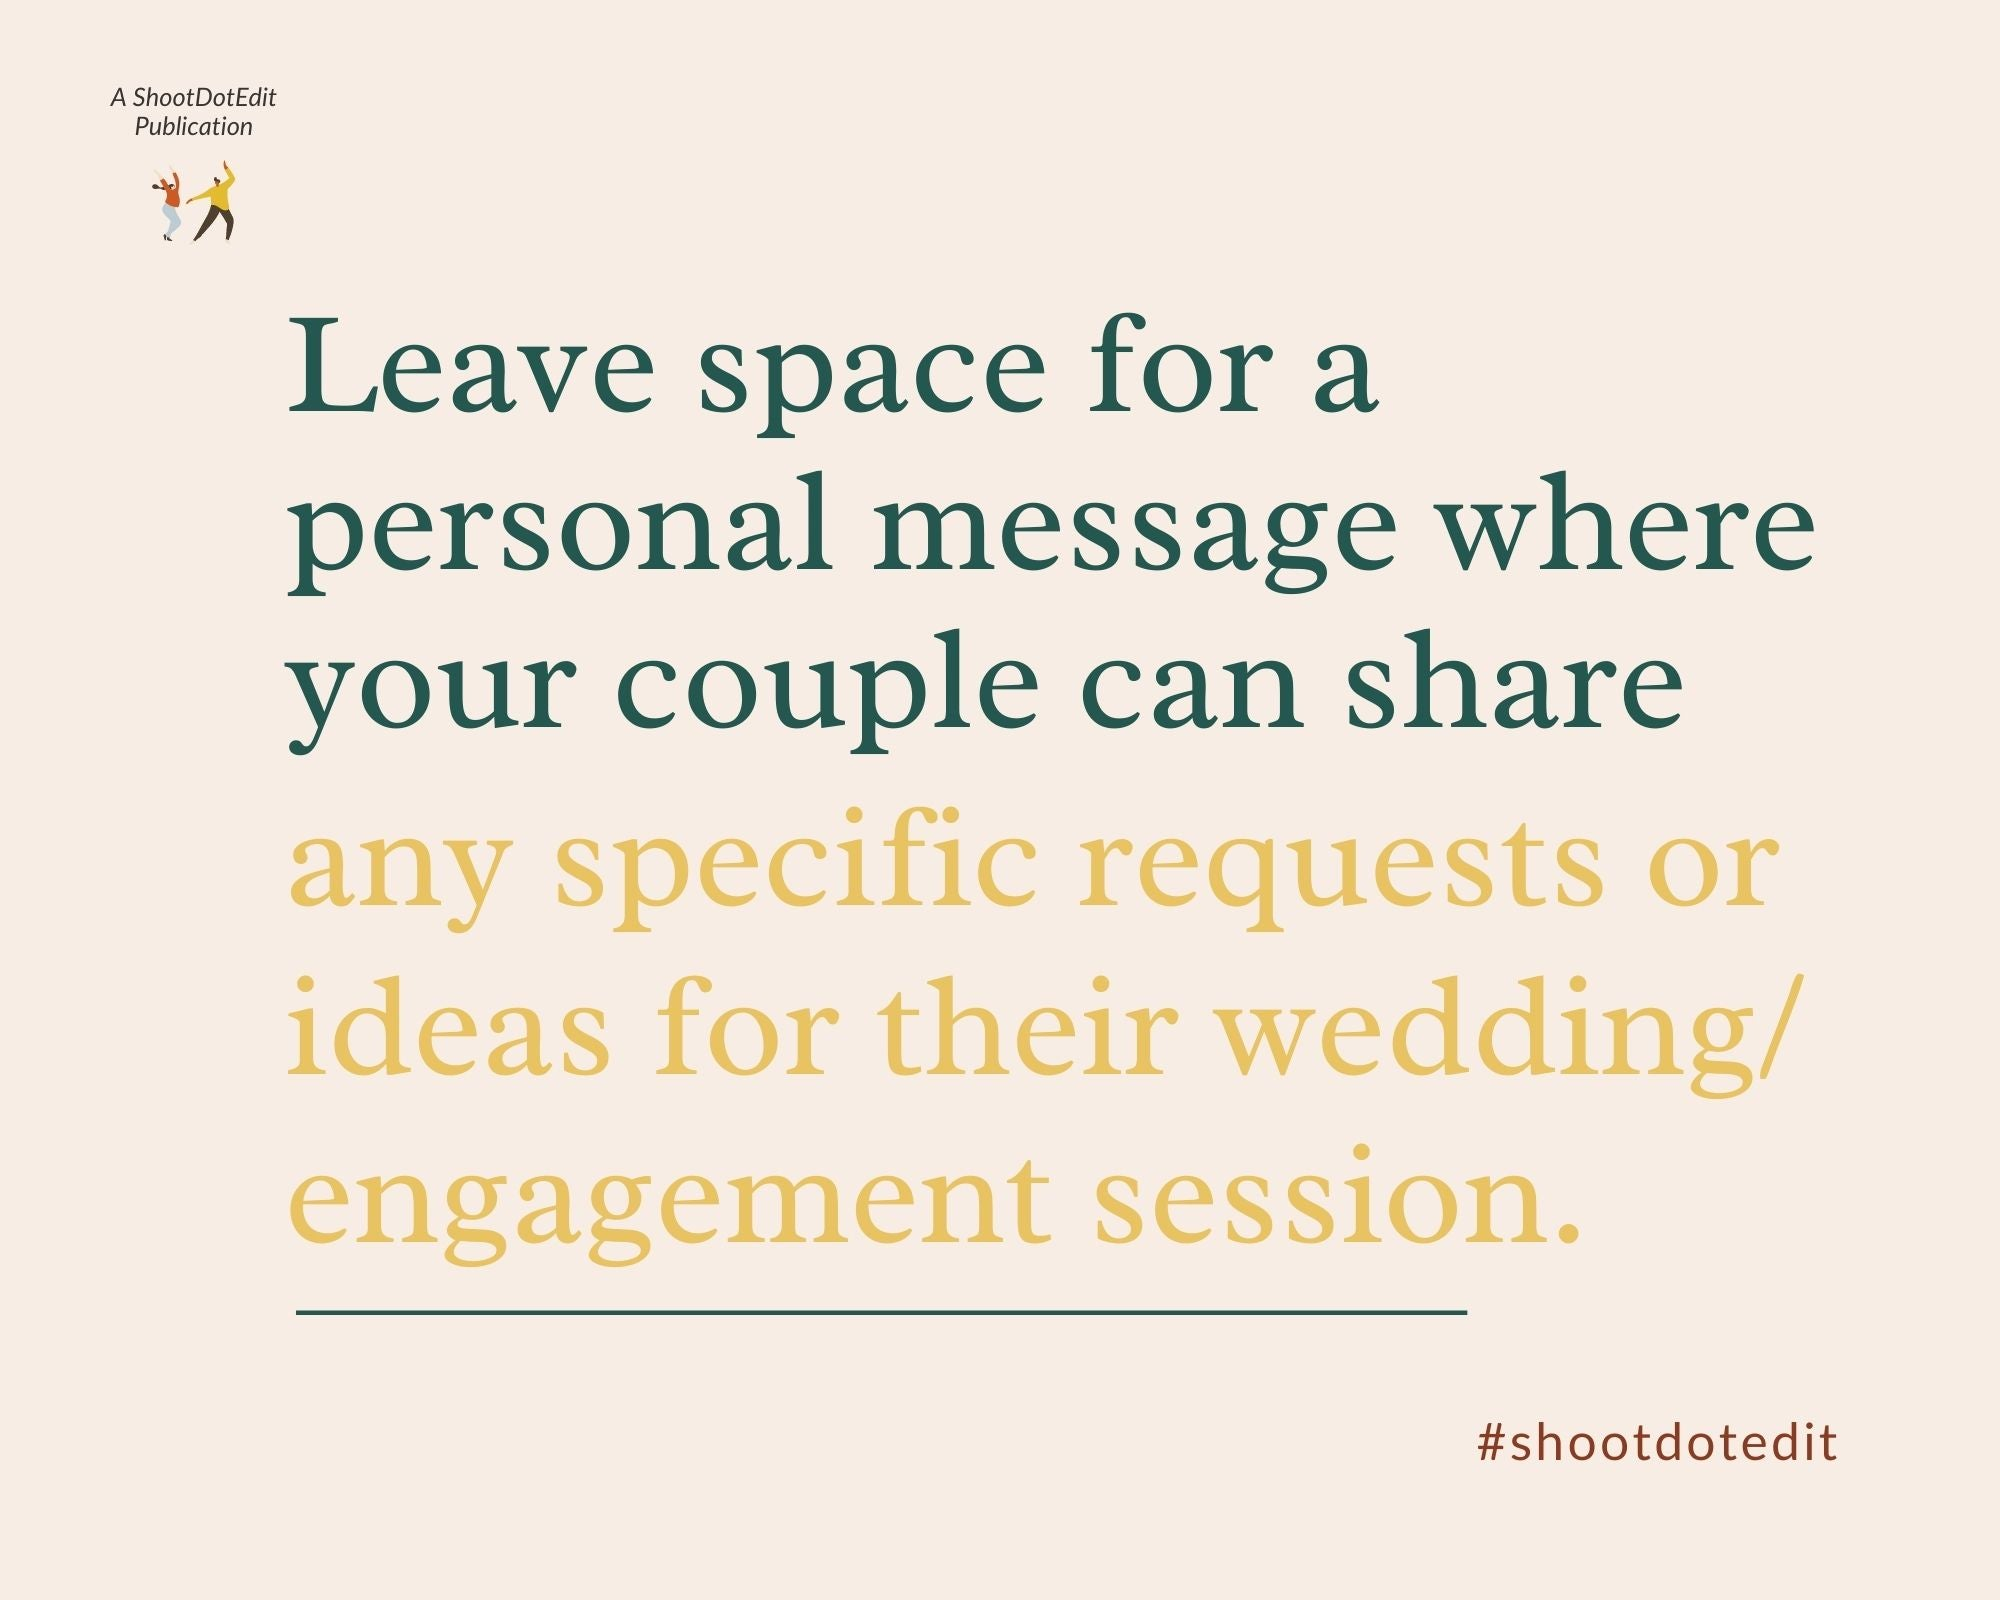 Infographic stating leave space for a personal message where your couple can share any specific requests or ideas for their wedding or engagement session